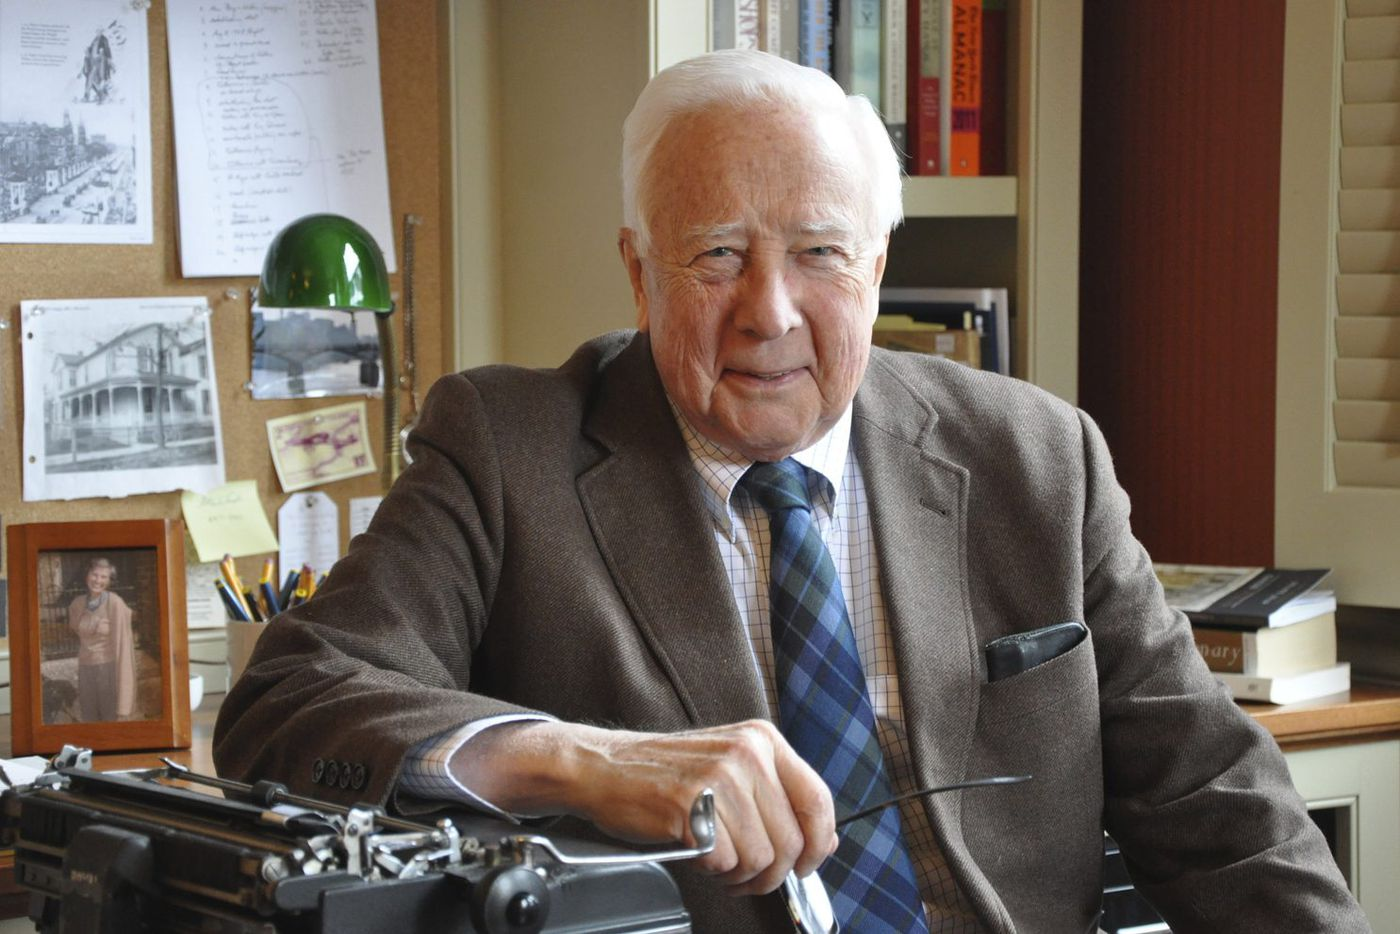 New David McCullough history prize aims to remind America it all started here at Carpenters' Hall